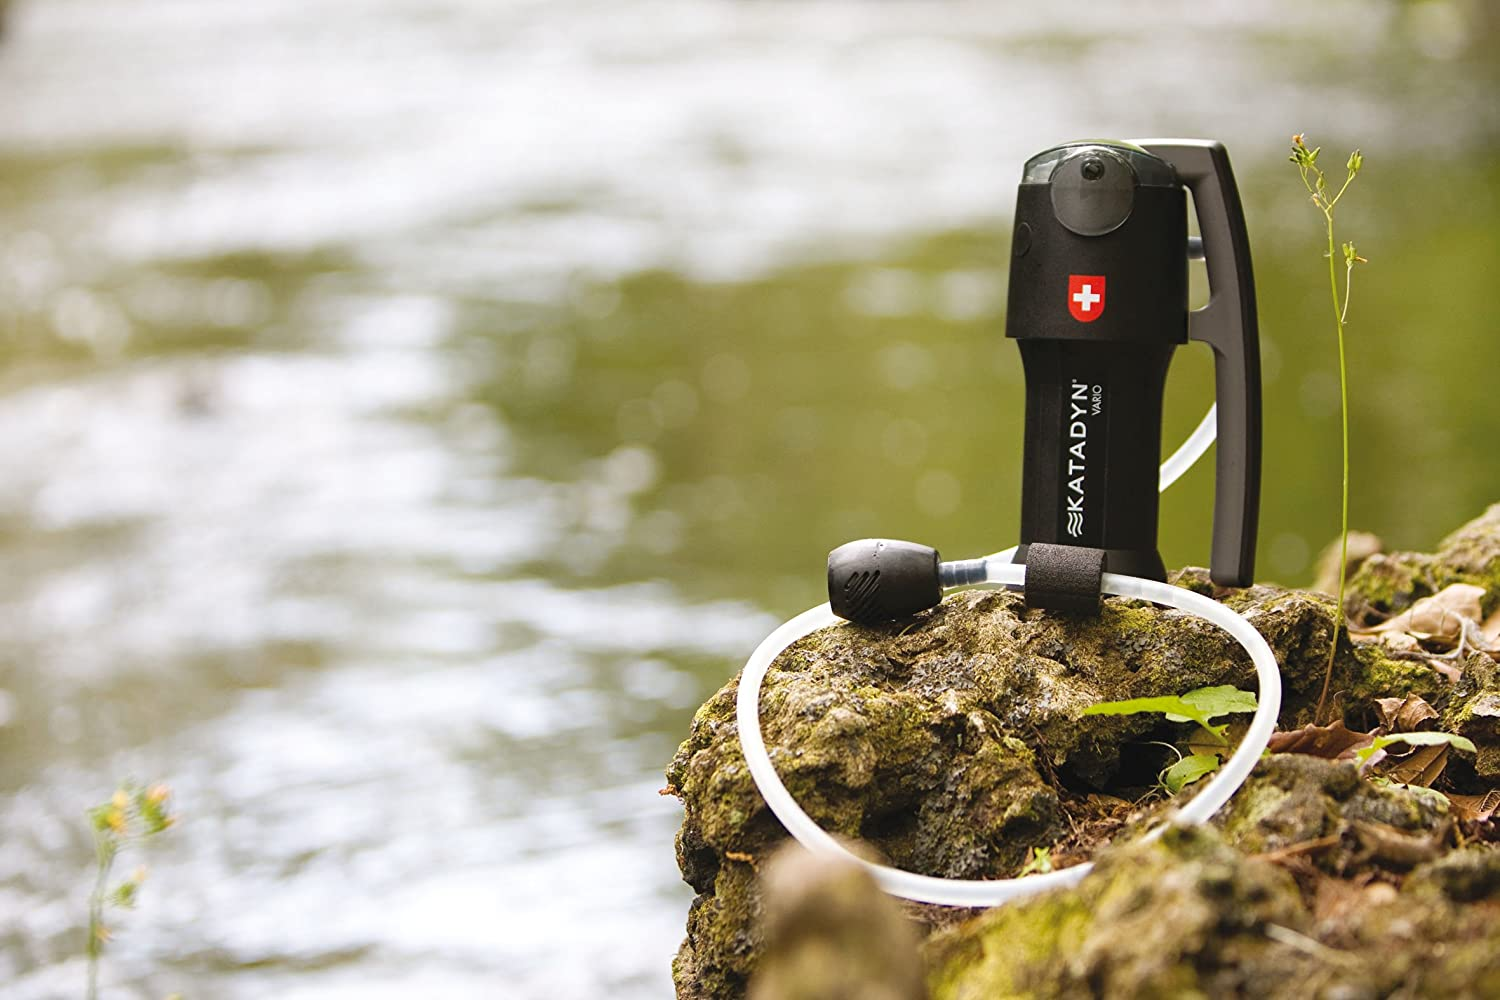 Another superb survival water filter choice.